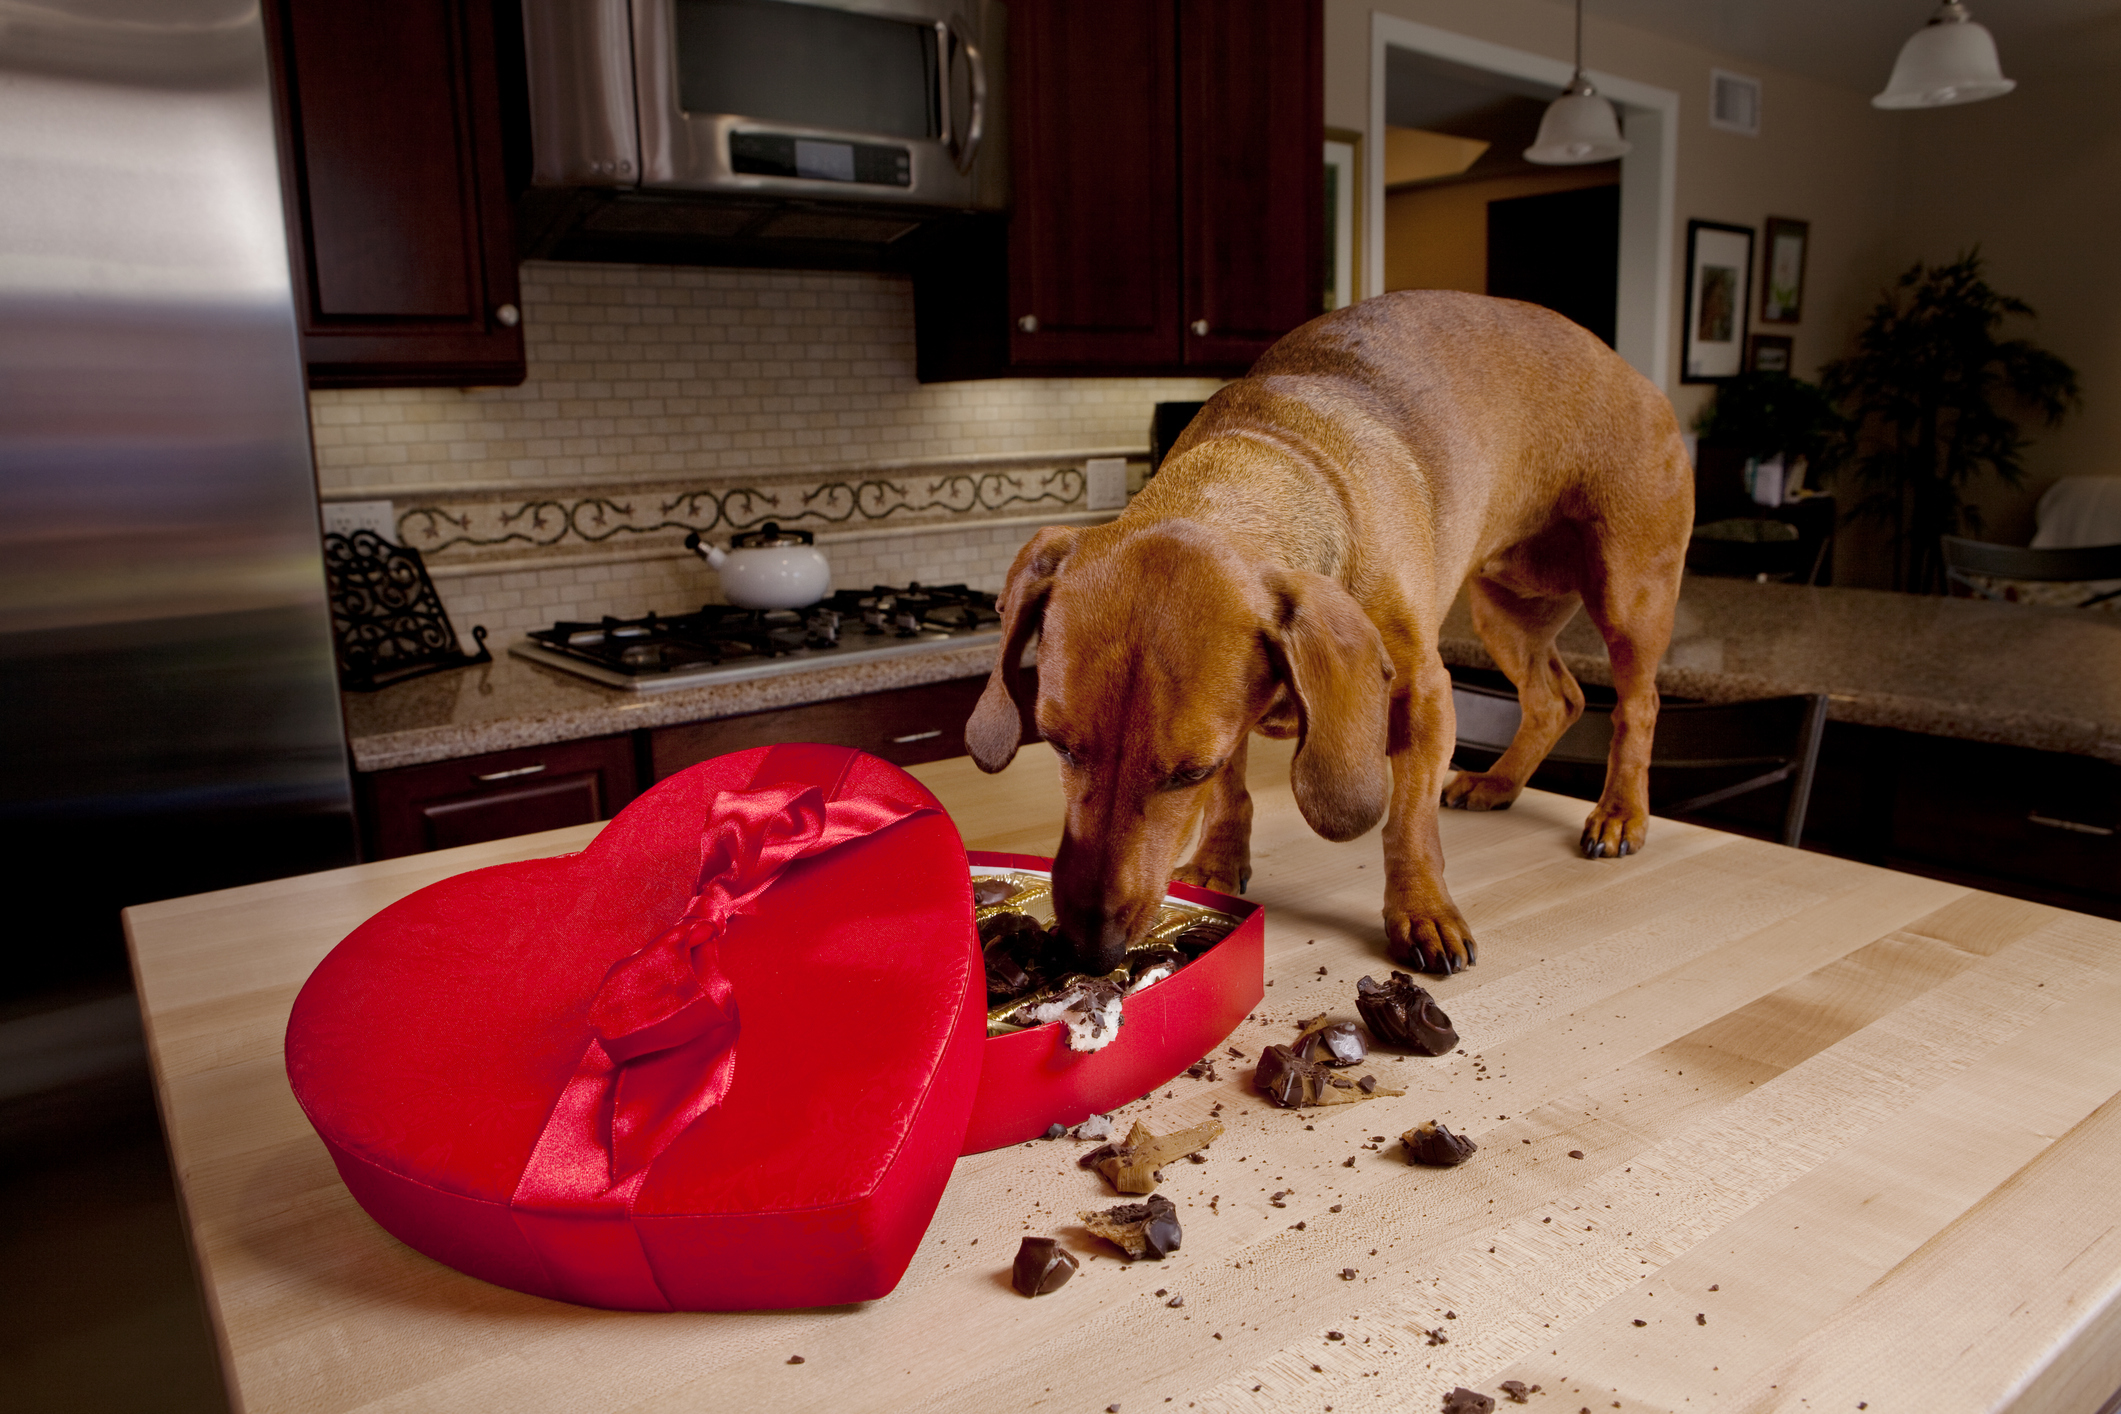 Dog eating chocolates from heart shaped Valentine's box